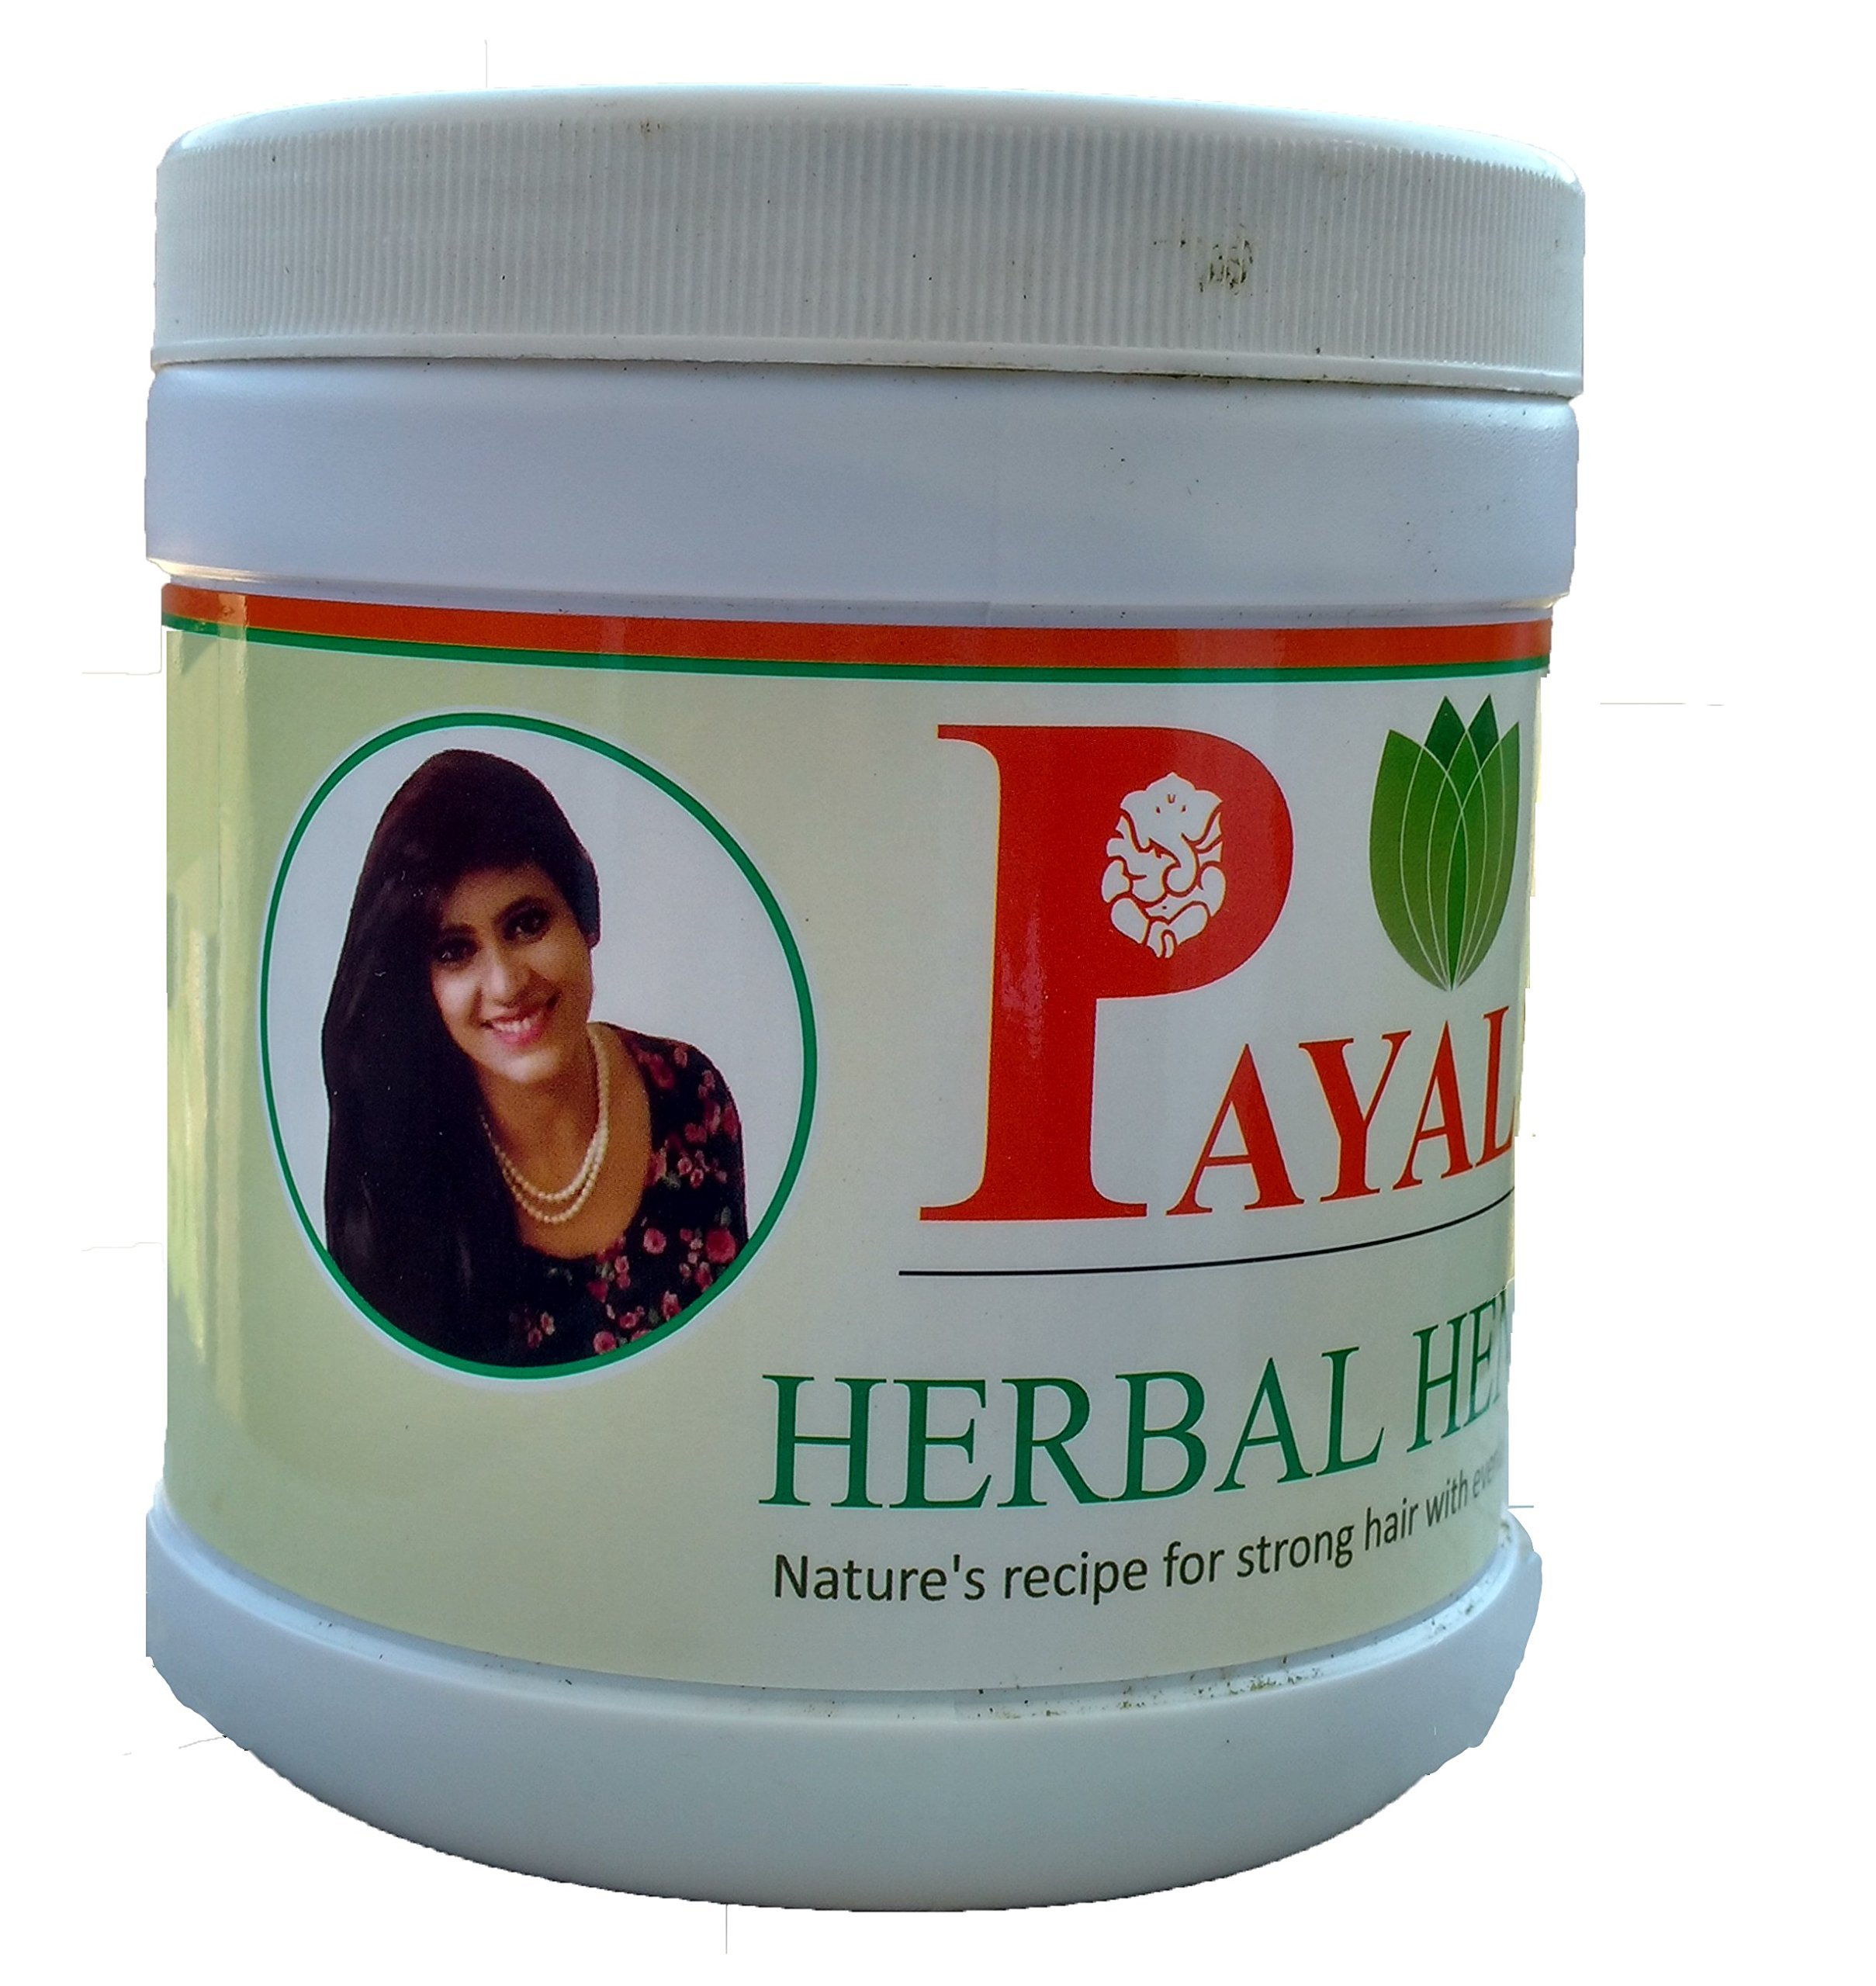 Payal's Herbal Henna 500gm product image